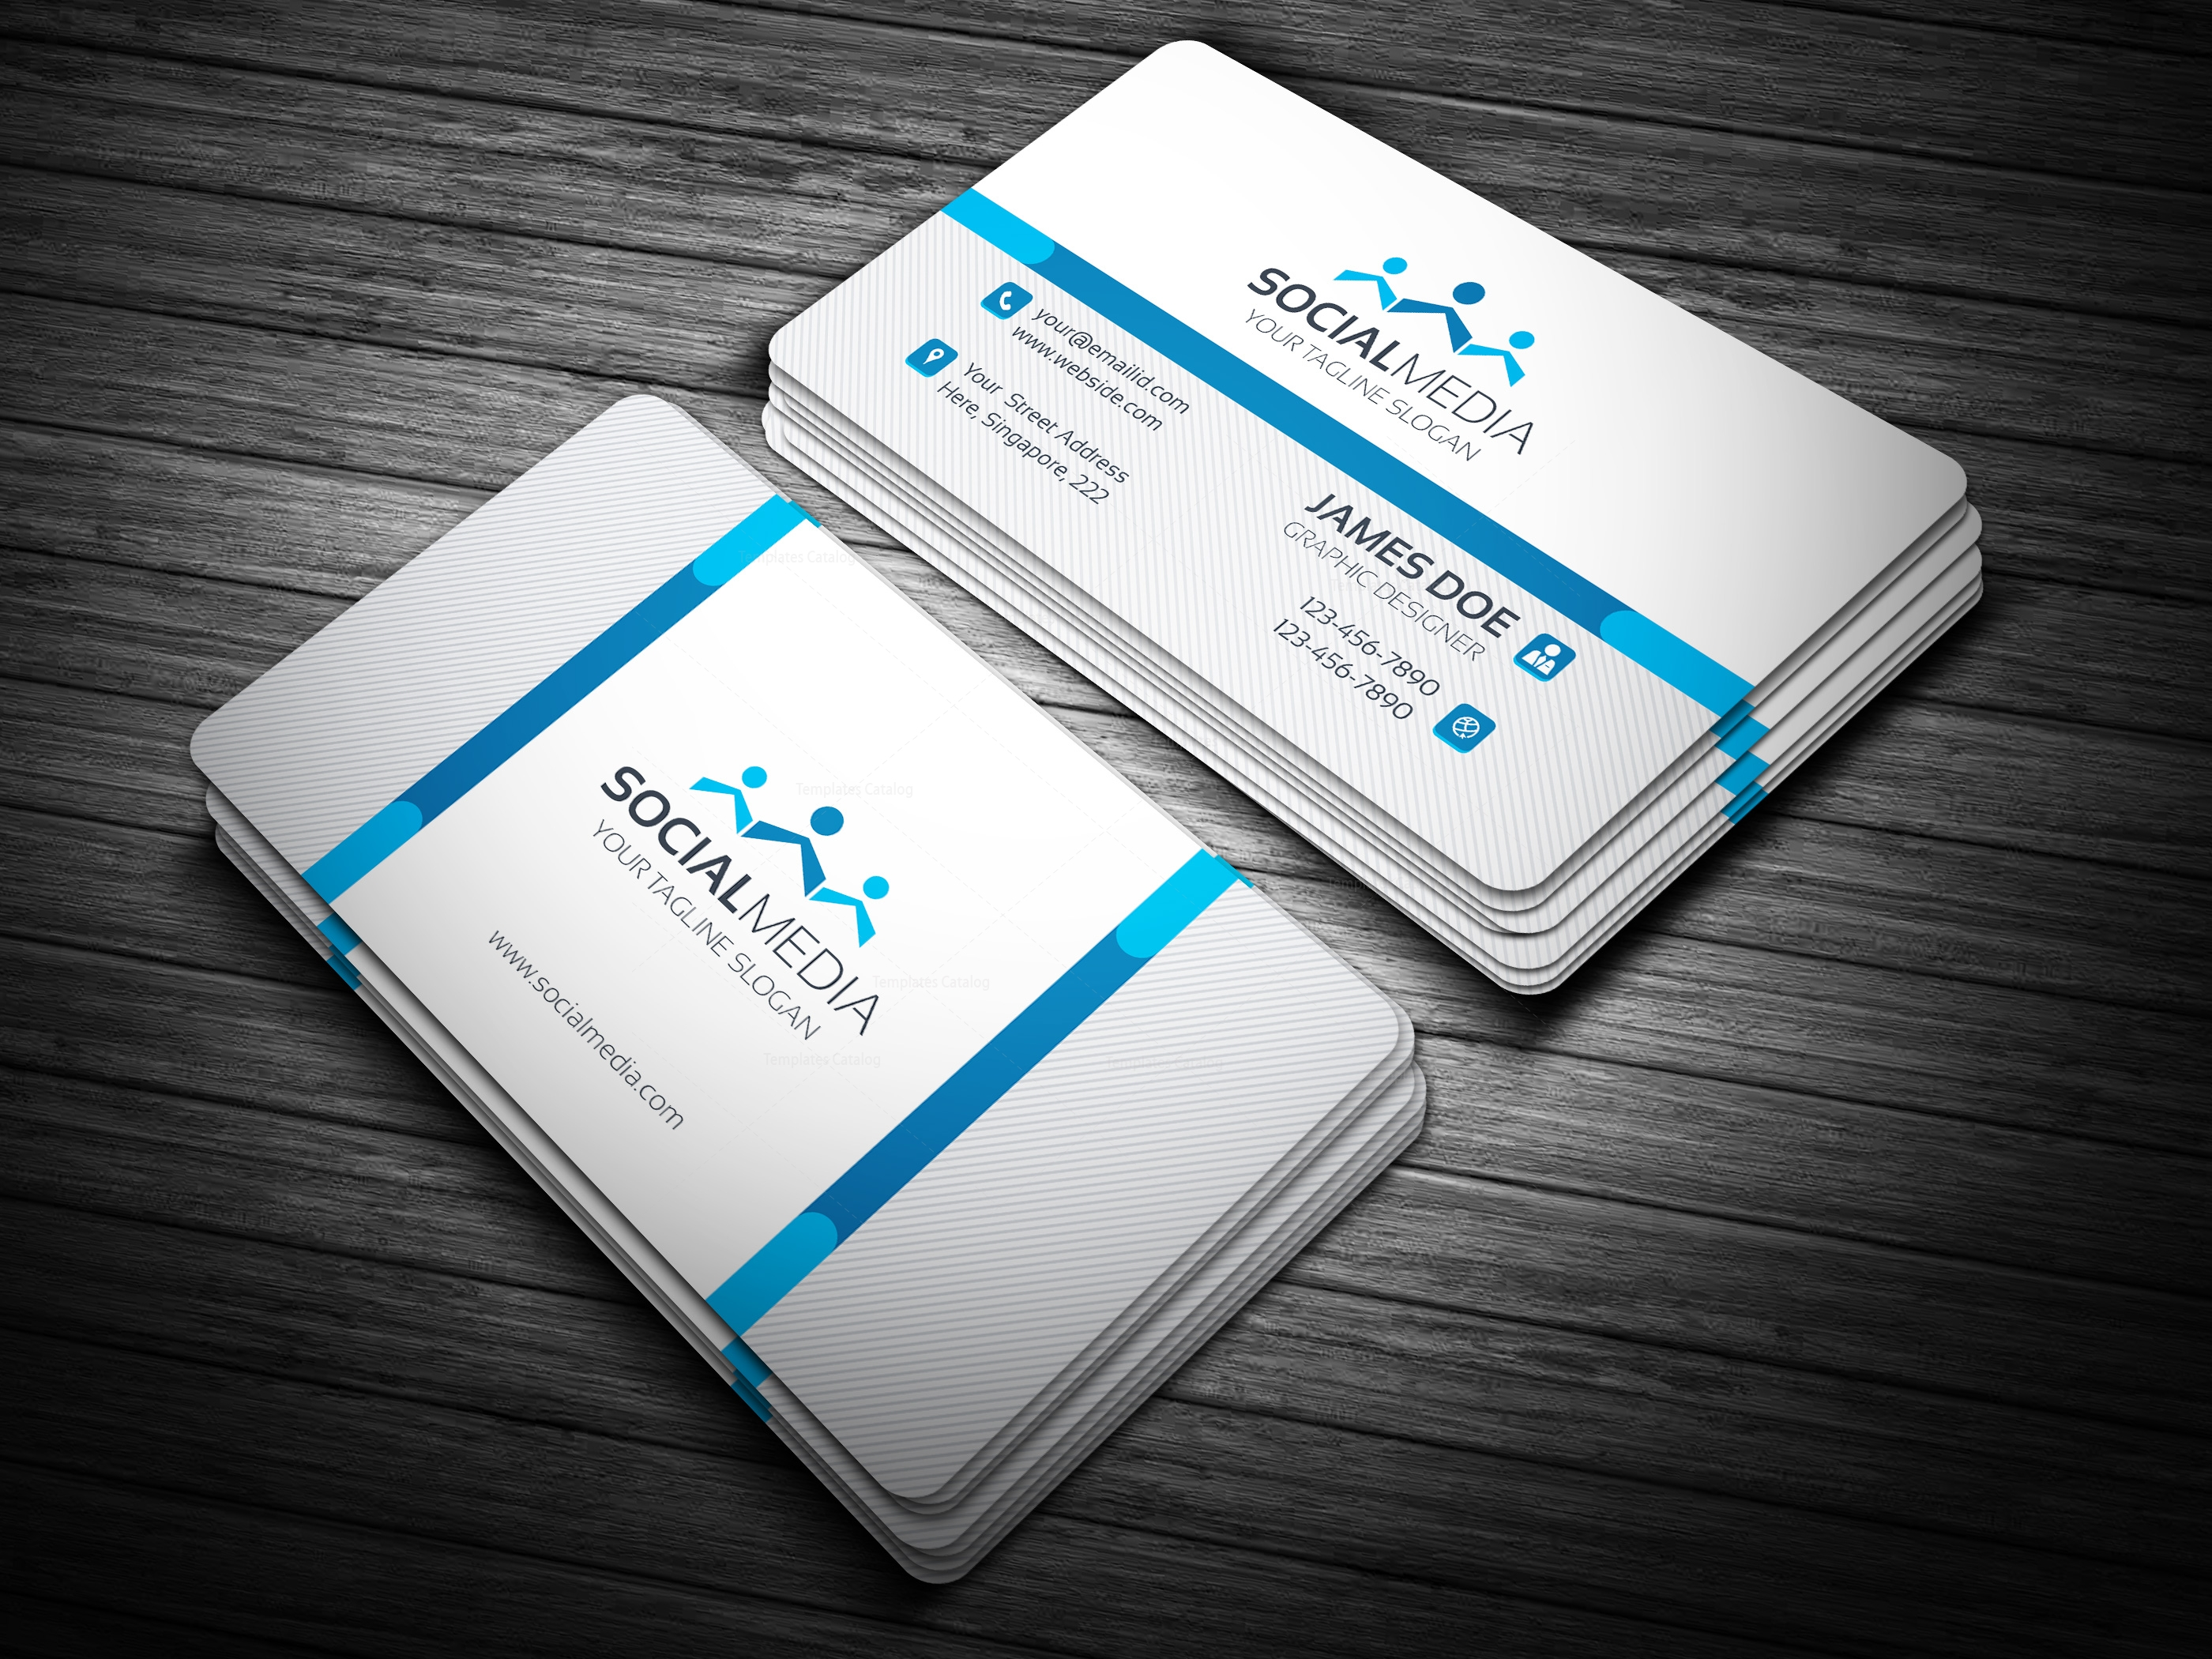 social media on business card - Acur.lunamedia.co